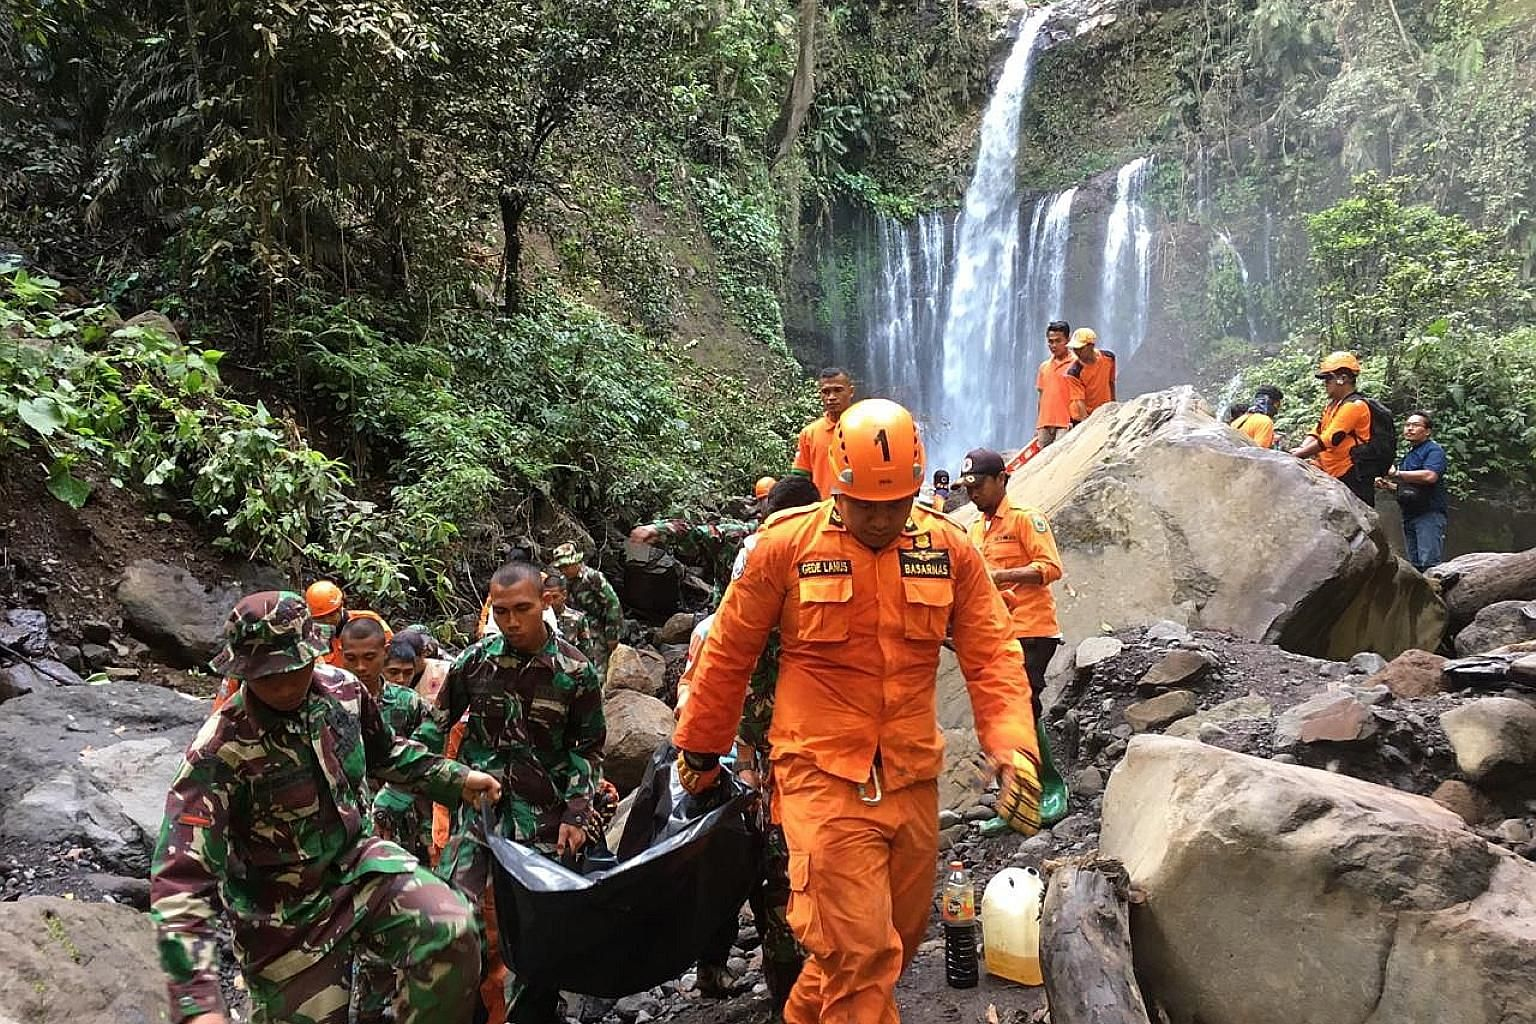 Rescuers carrying the body of Malaysian Lim Sai Wah, who died in a landslide triggered by an earthquake in Lombok on Sunday. Two other people died in the incident - another Malaysian and an Indonesian.